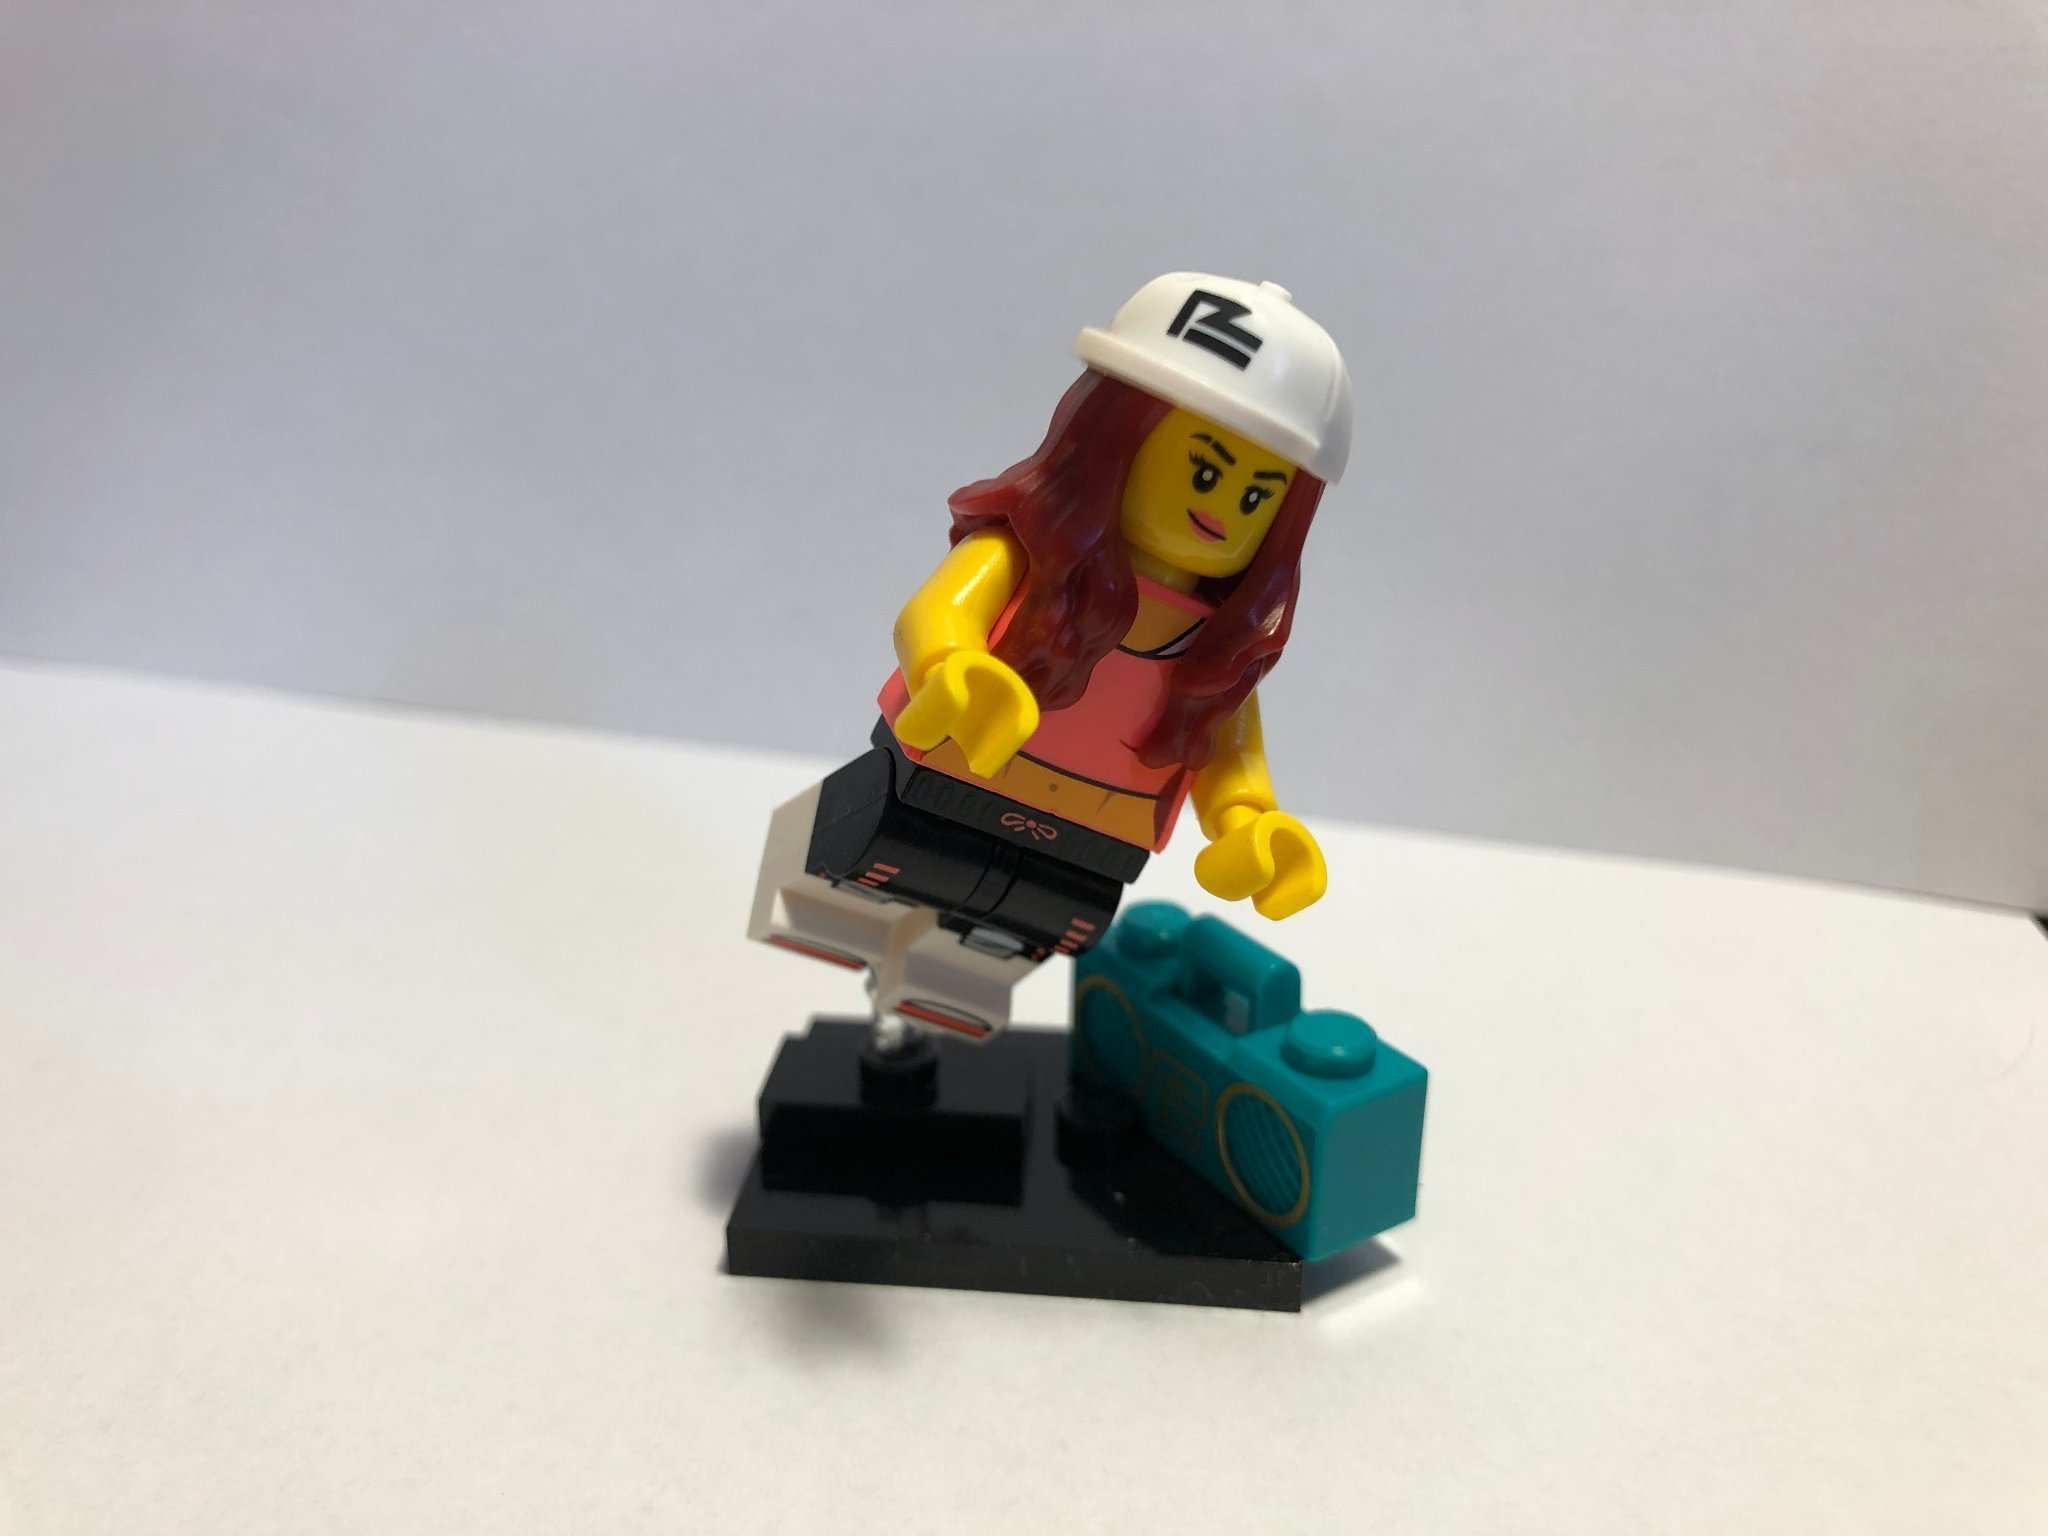 Lego series 20 - Hip Hop Girl with Speakers